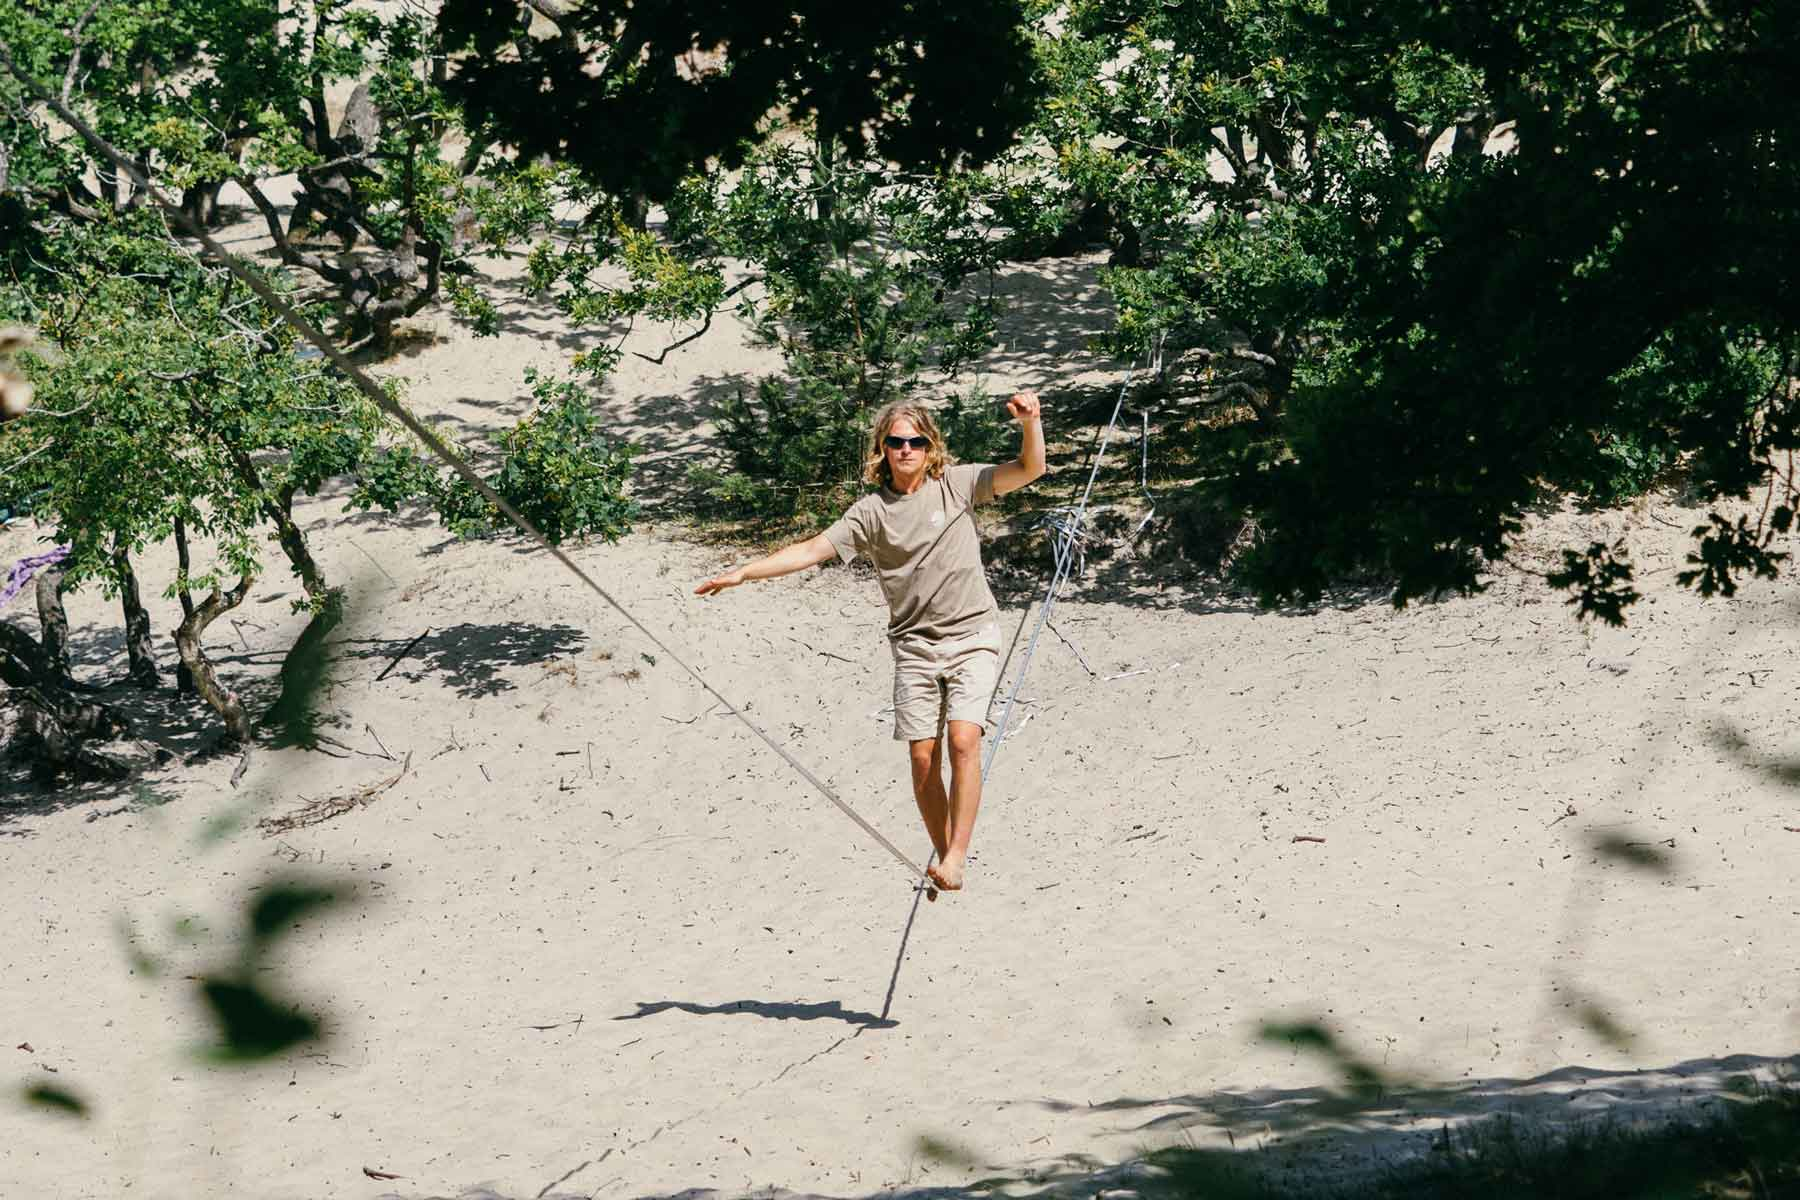 How to Slackline: 10 Slacklining Tips for Beginners